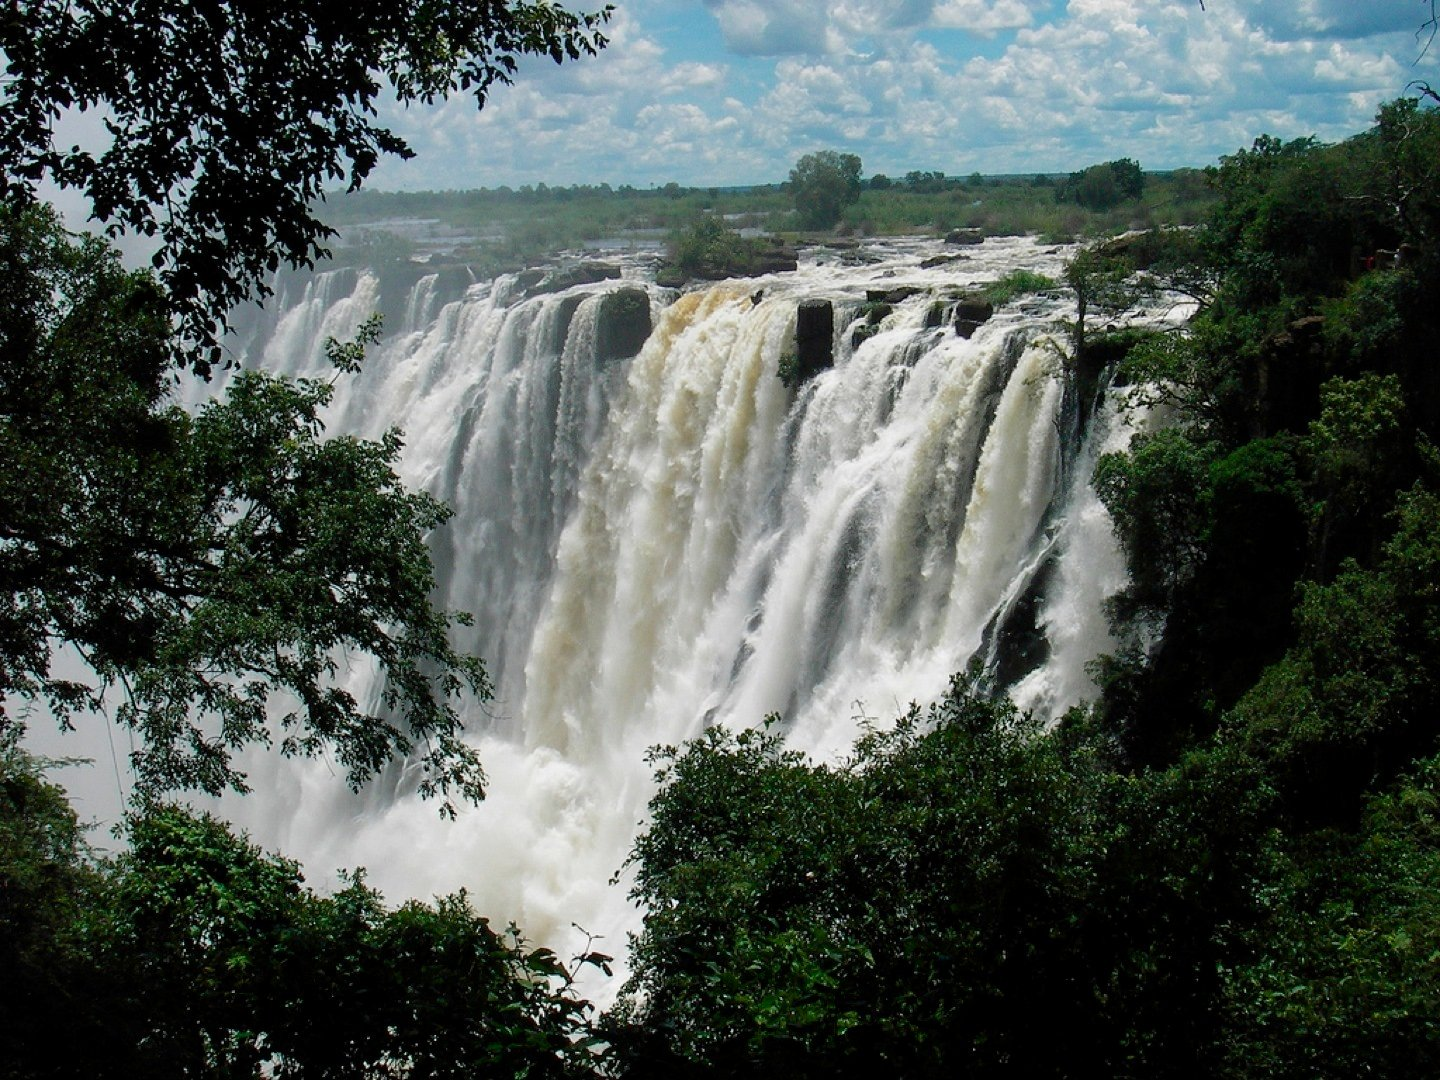 http://www.south-african-hotels.com/media/victoria-falls.jpg